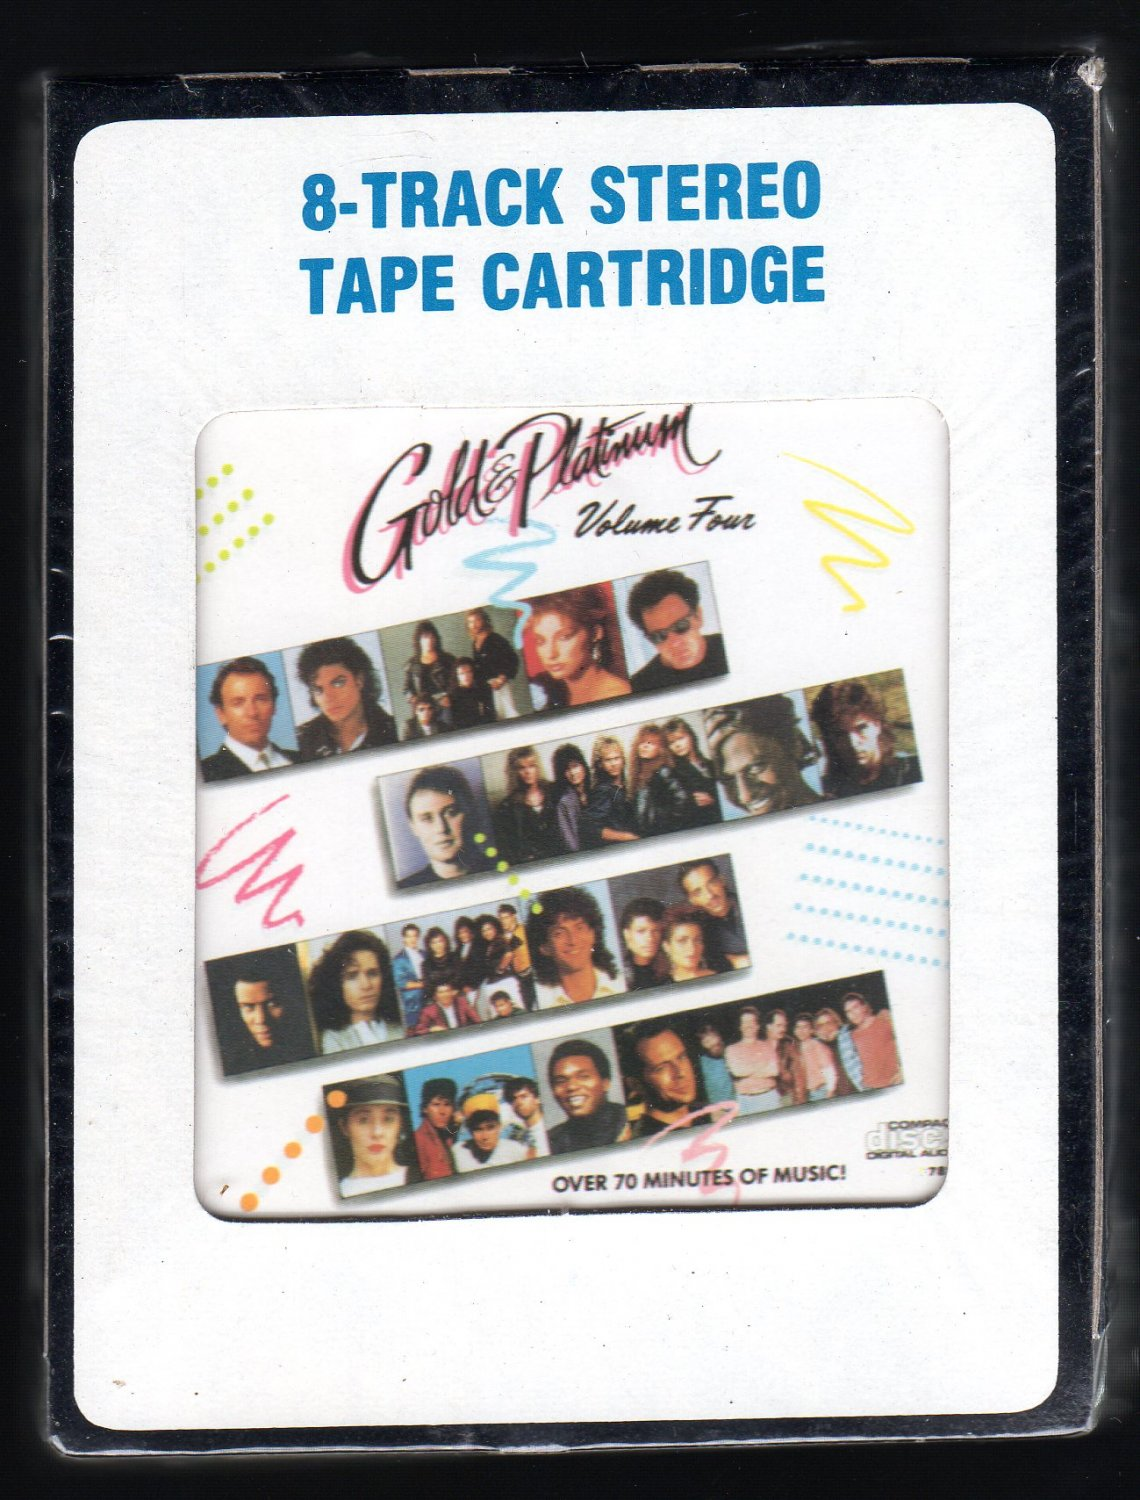 Gold & Platinum Vol 4 - Various Rock Compilation 1988 CRC REALM Sealed A32 8-TRACK TAPE